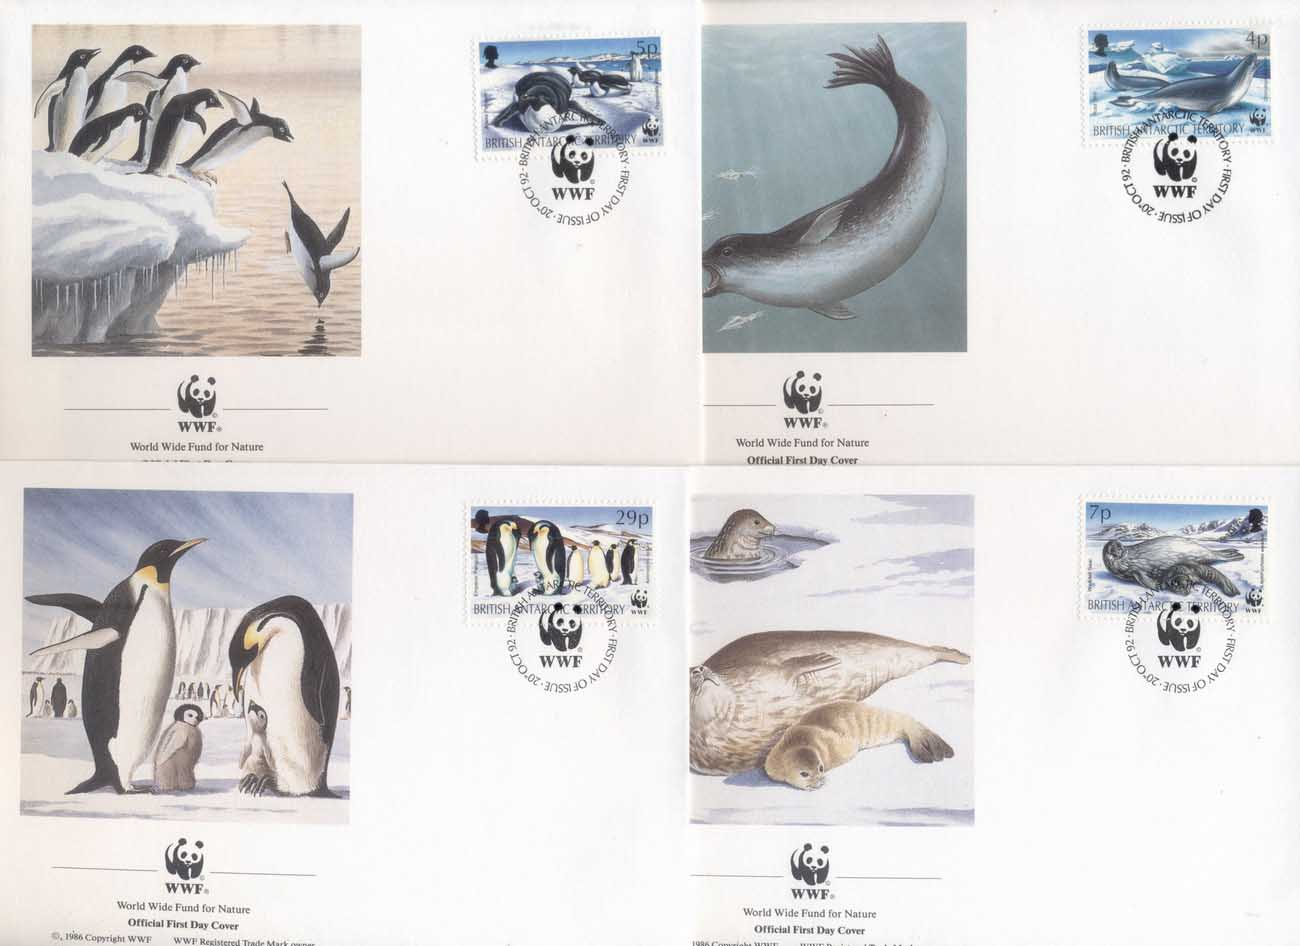 BAT 1992 WWF Antarctic Wildlife, Penguin, Seal FDC